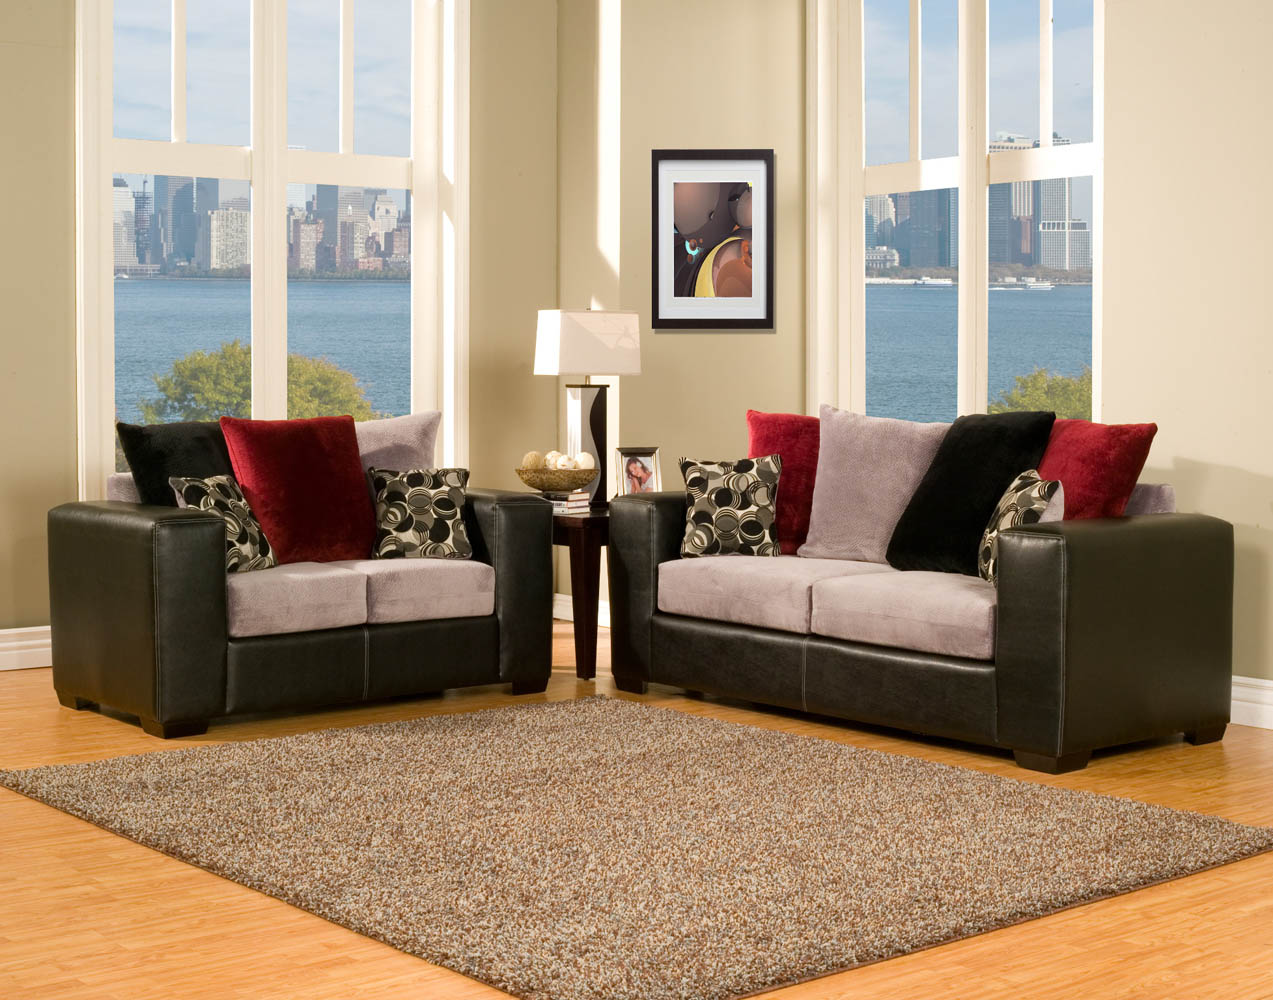 2 piece black grey and red modern sofa set Red and grey sofa